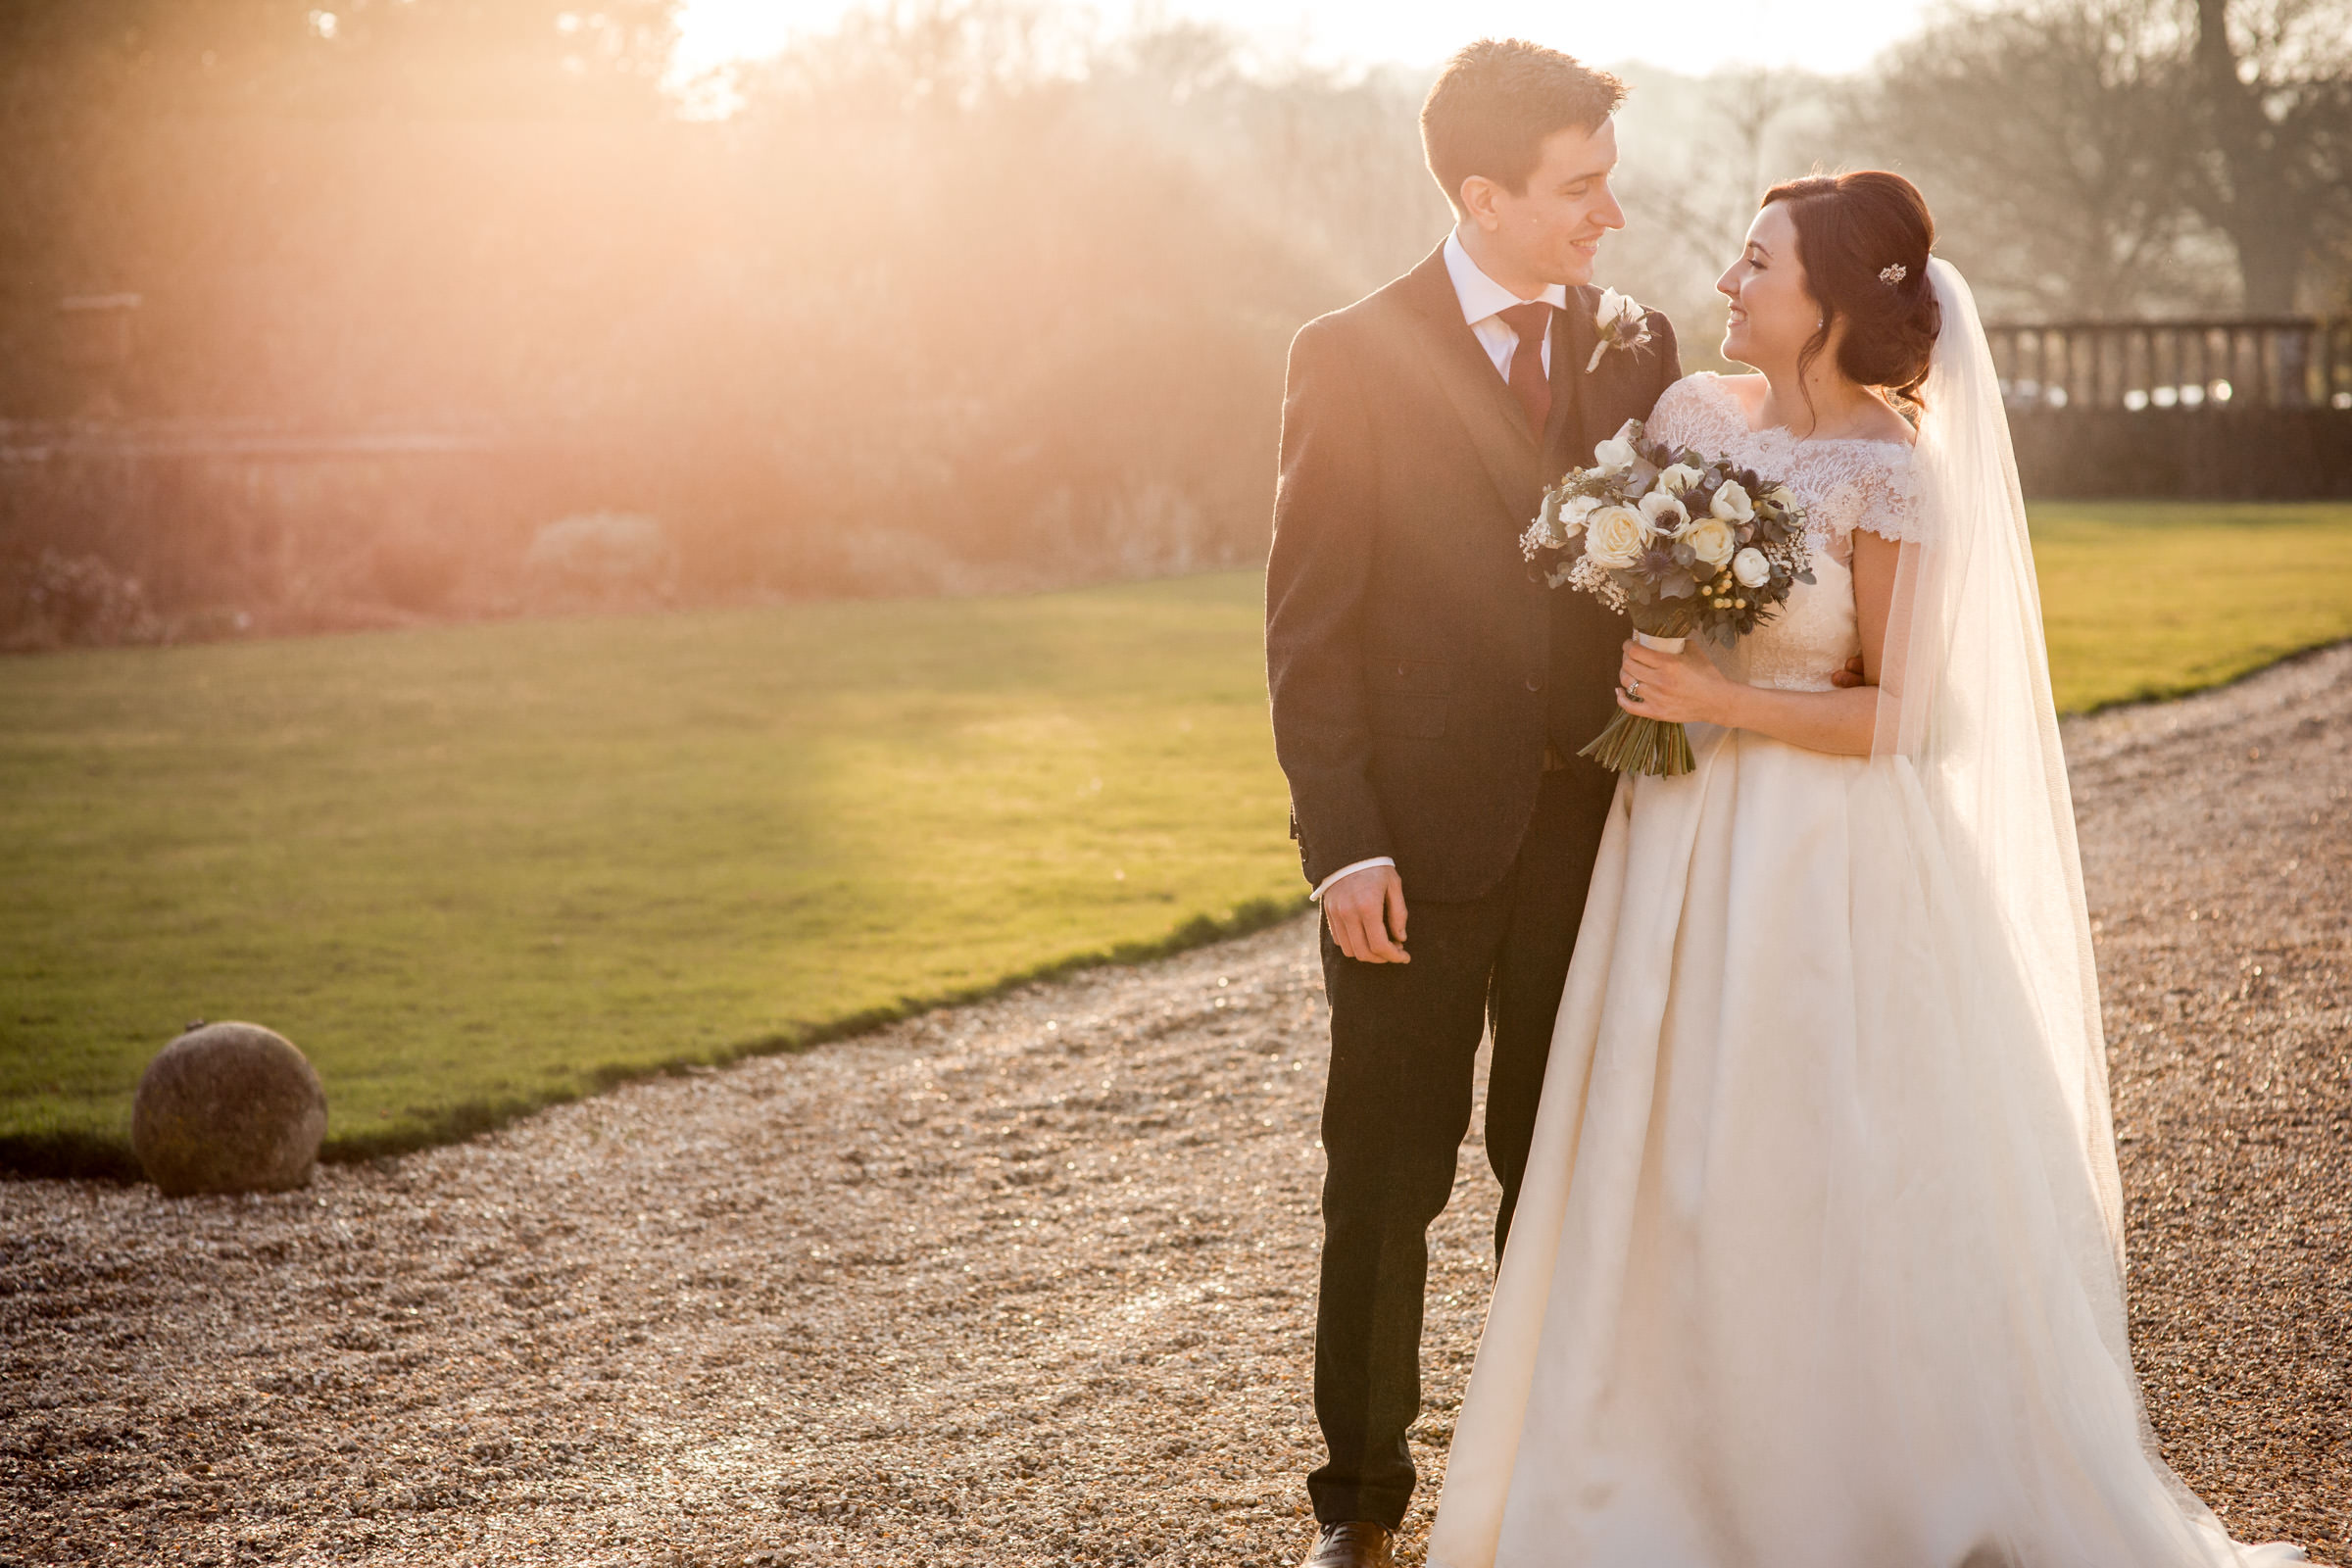 relaxed wedding photography at in somerset 019.jpg